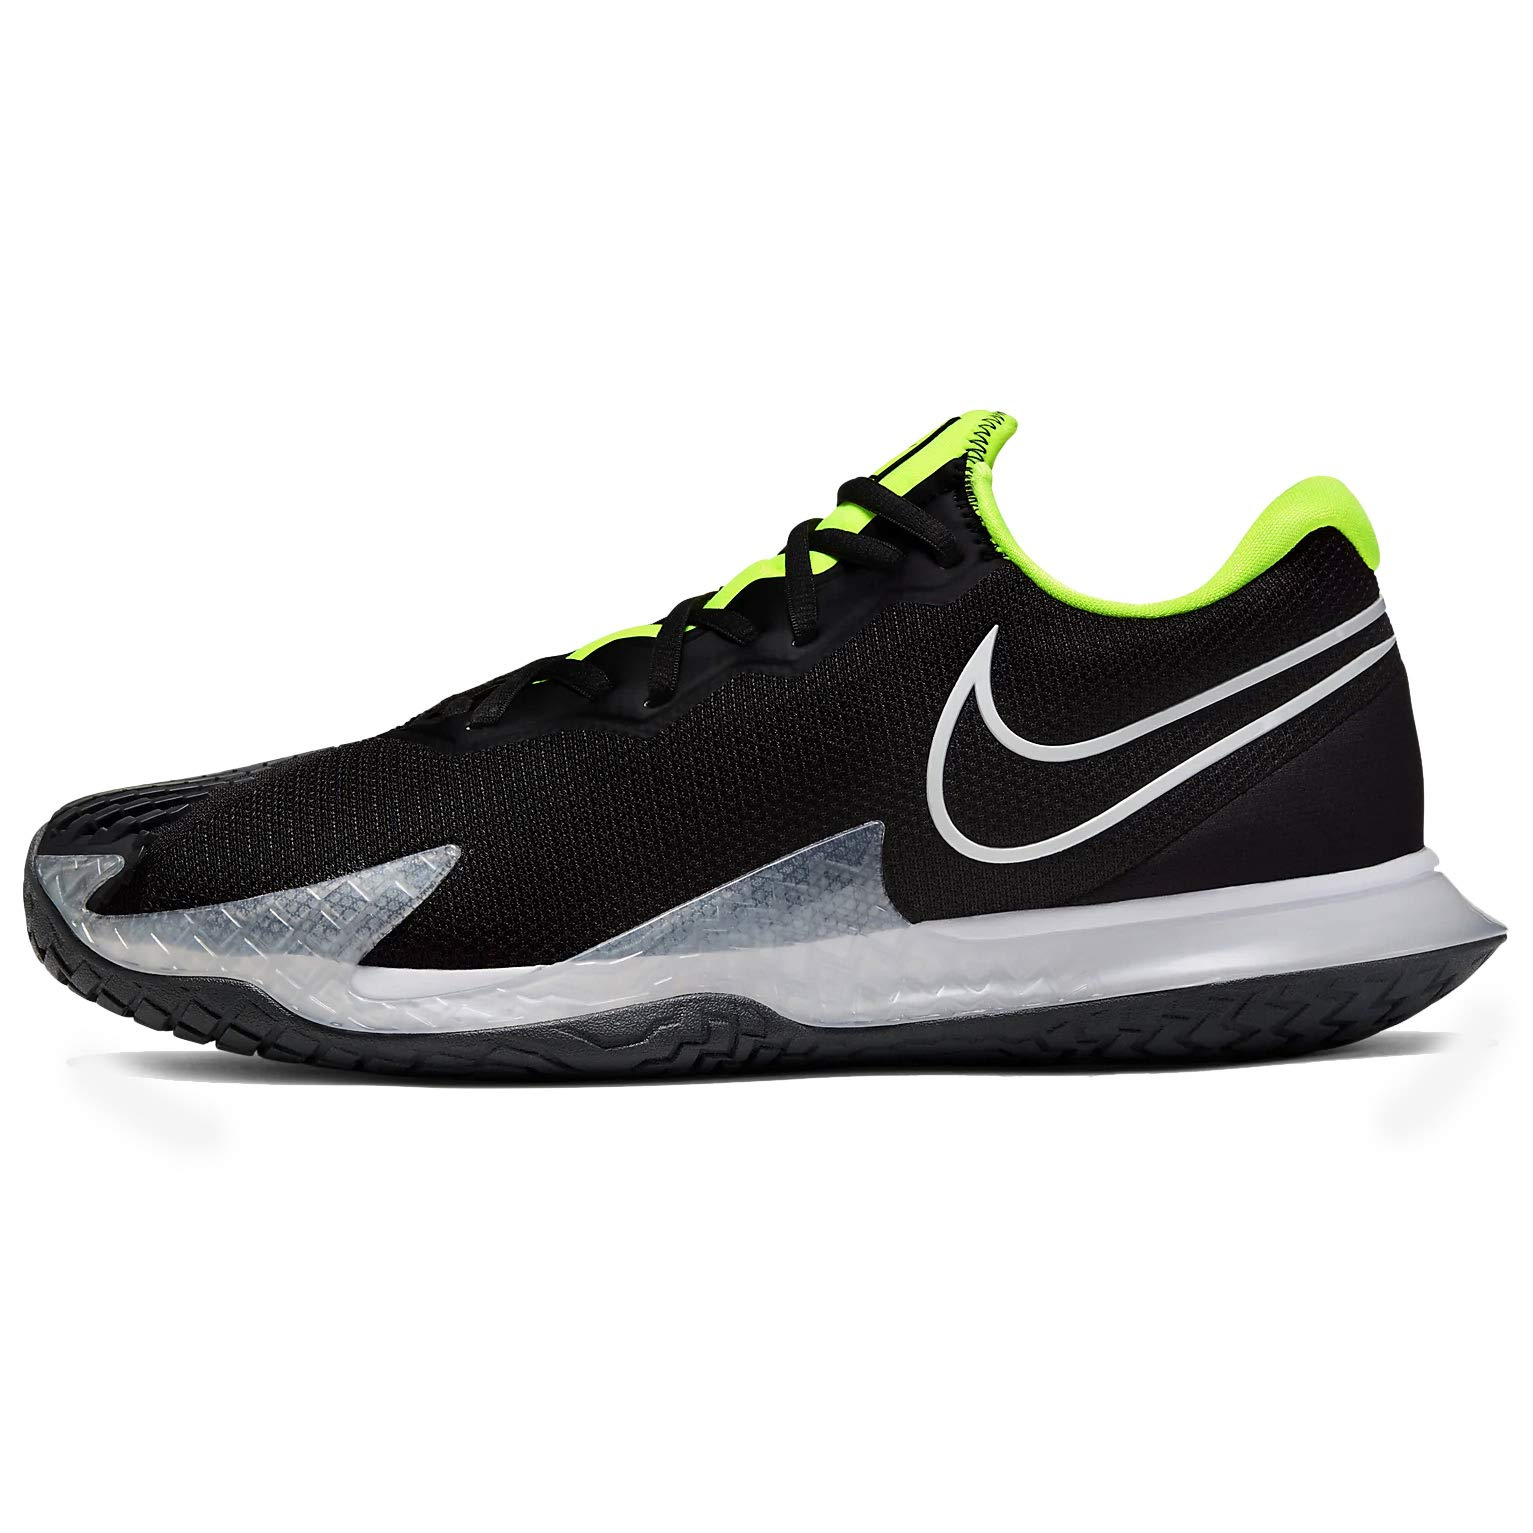 Air Zoom Vapor Cage 4 Hc Hard Court Mens Tennis Shoe Cd0424-001